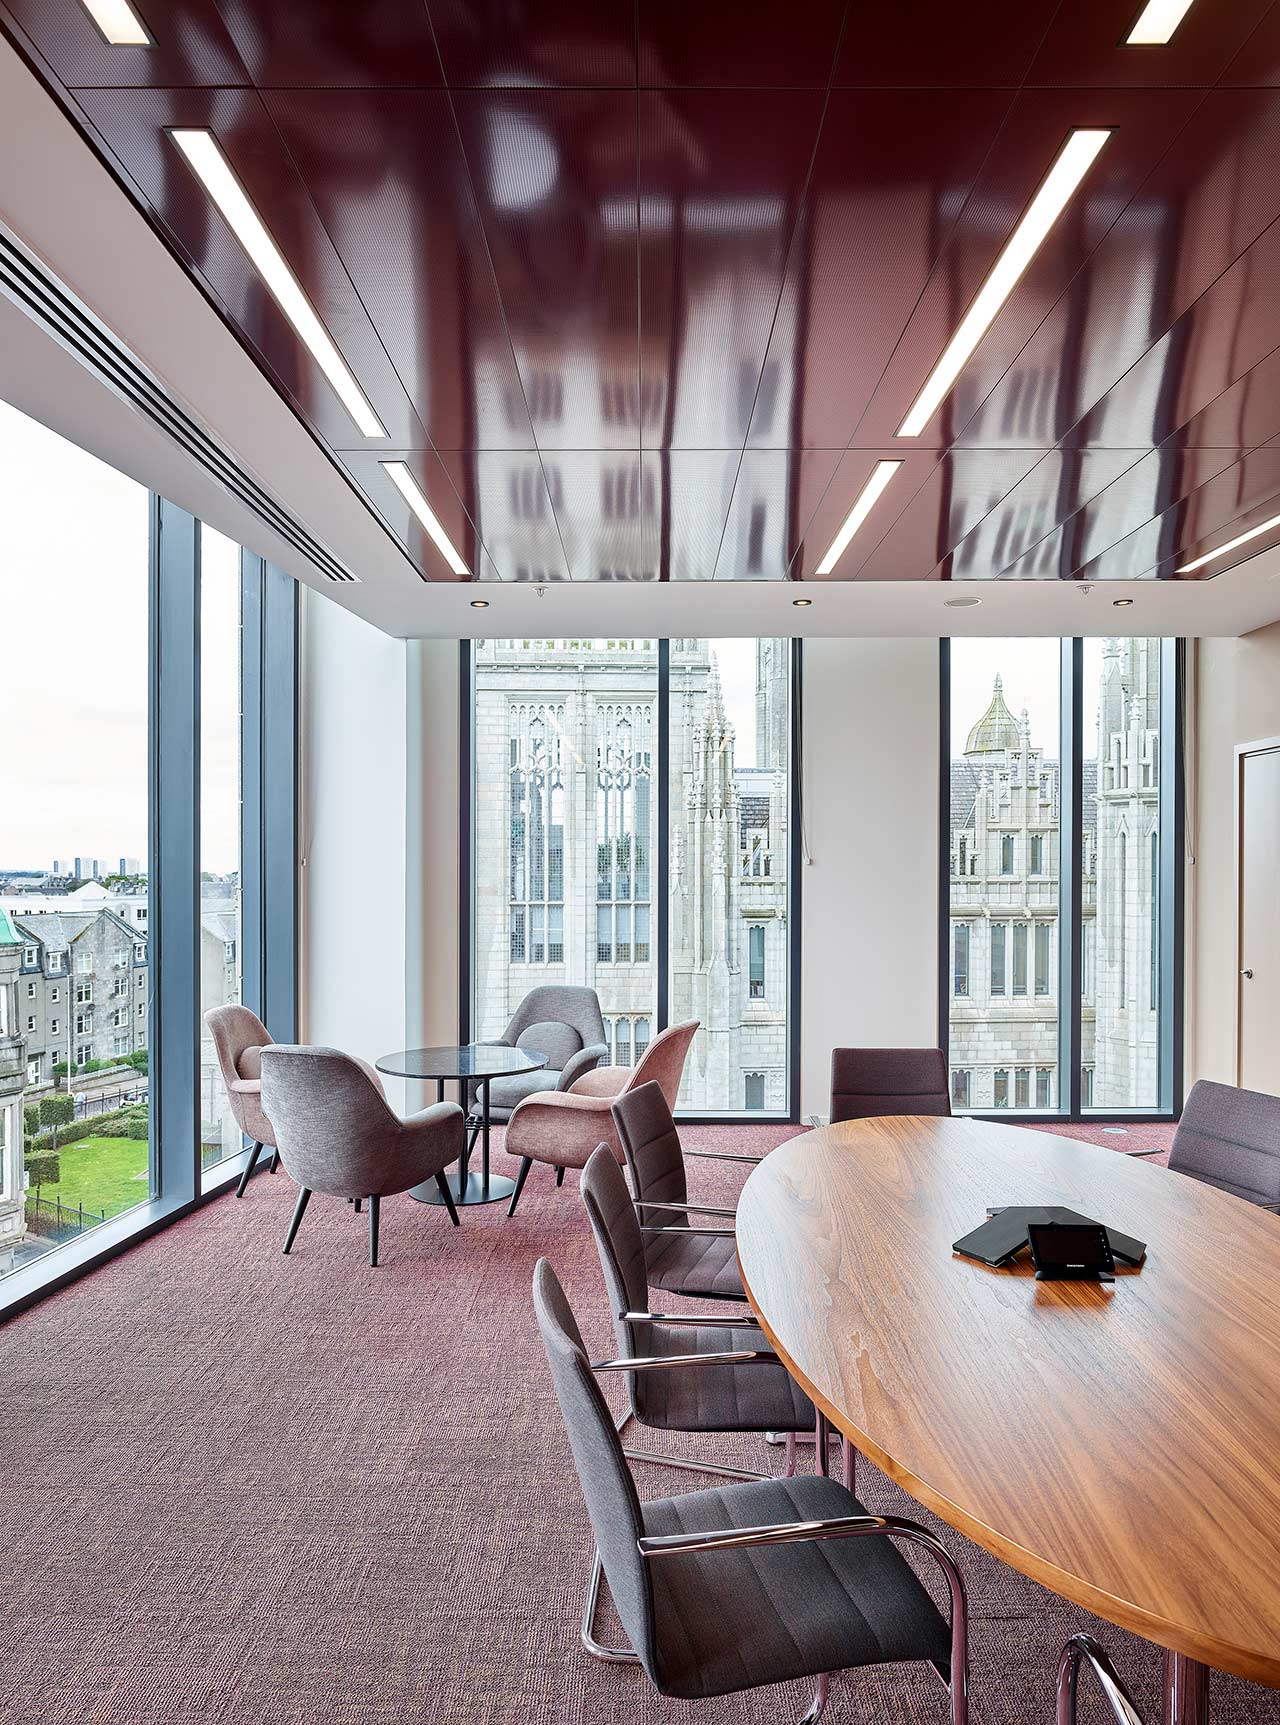 KPMG Aberdeen - Meeting Room